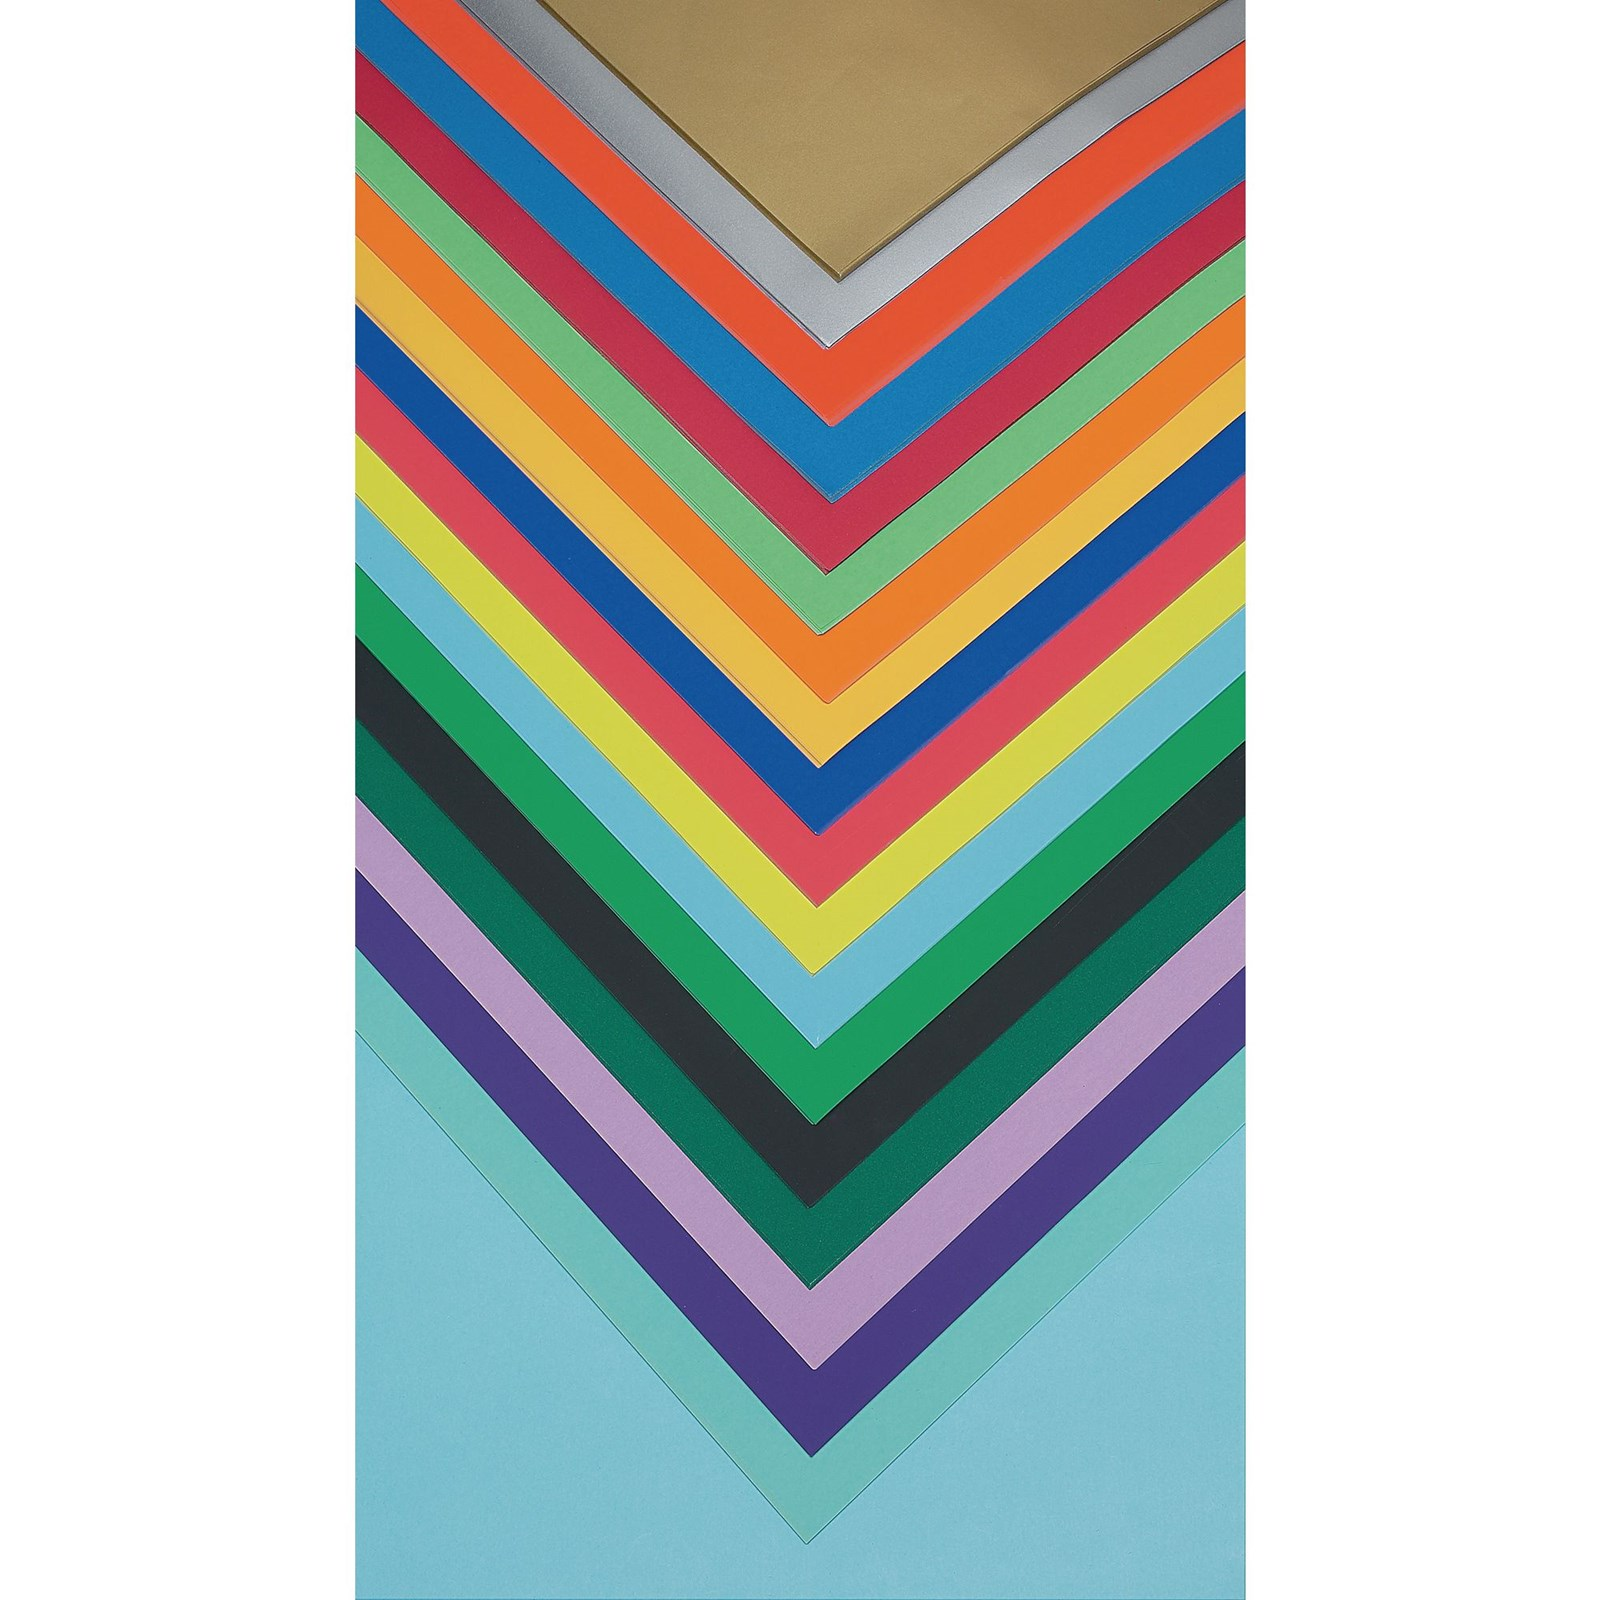 Poster Paper Sheets 510 x 760mm - Azure - Pack of 25